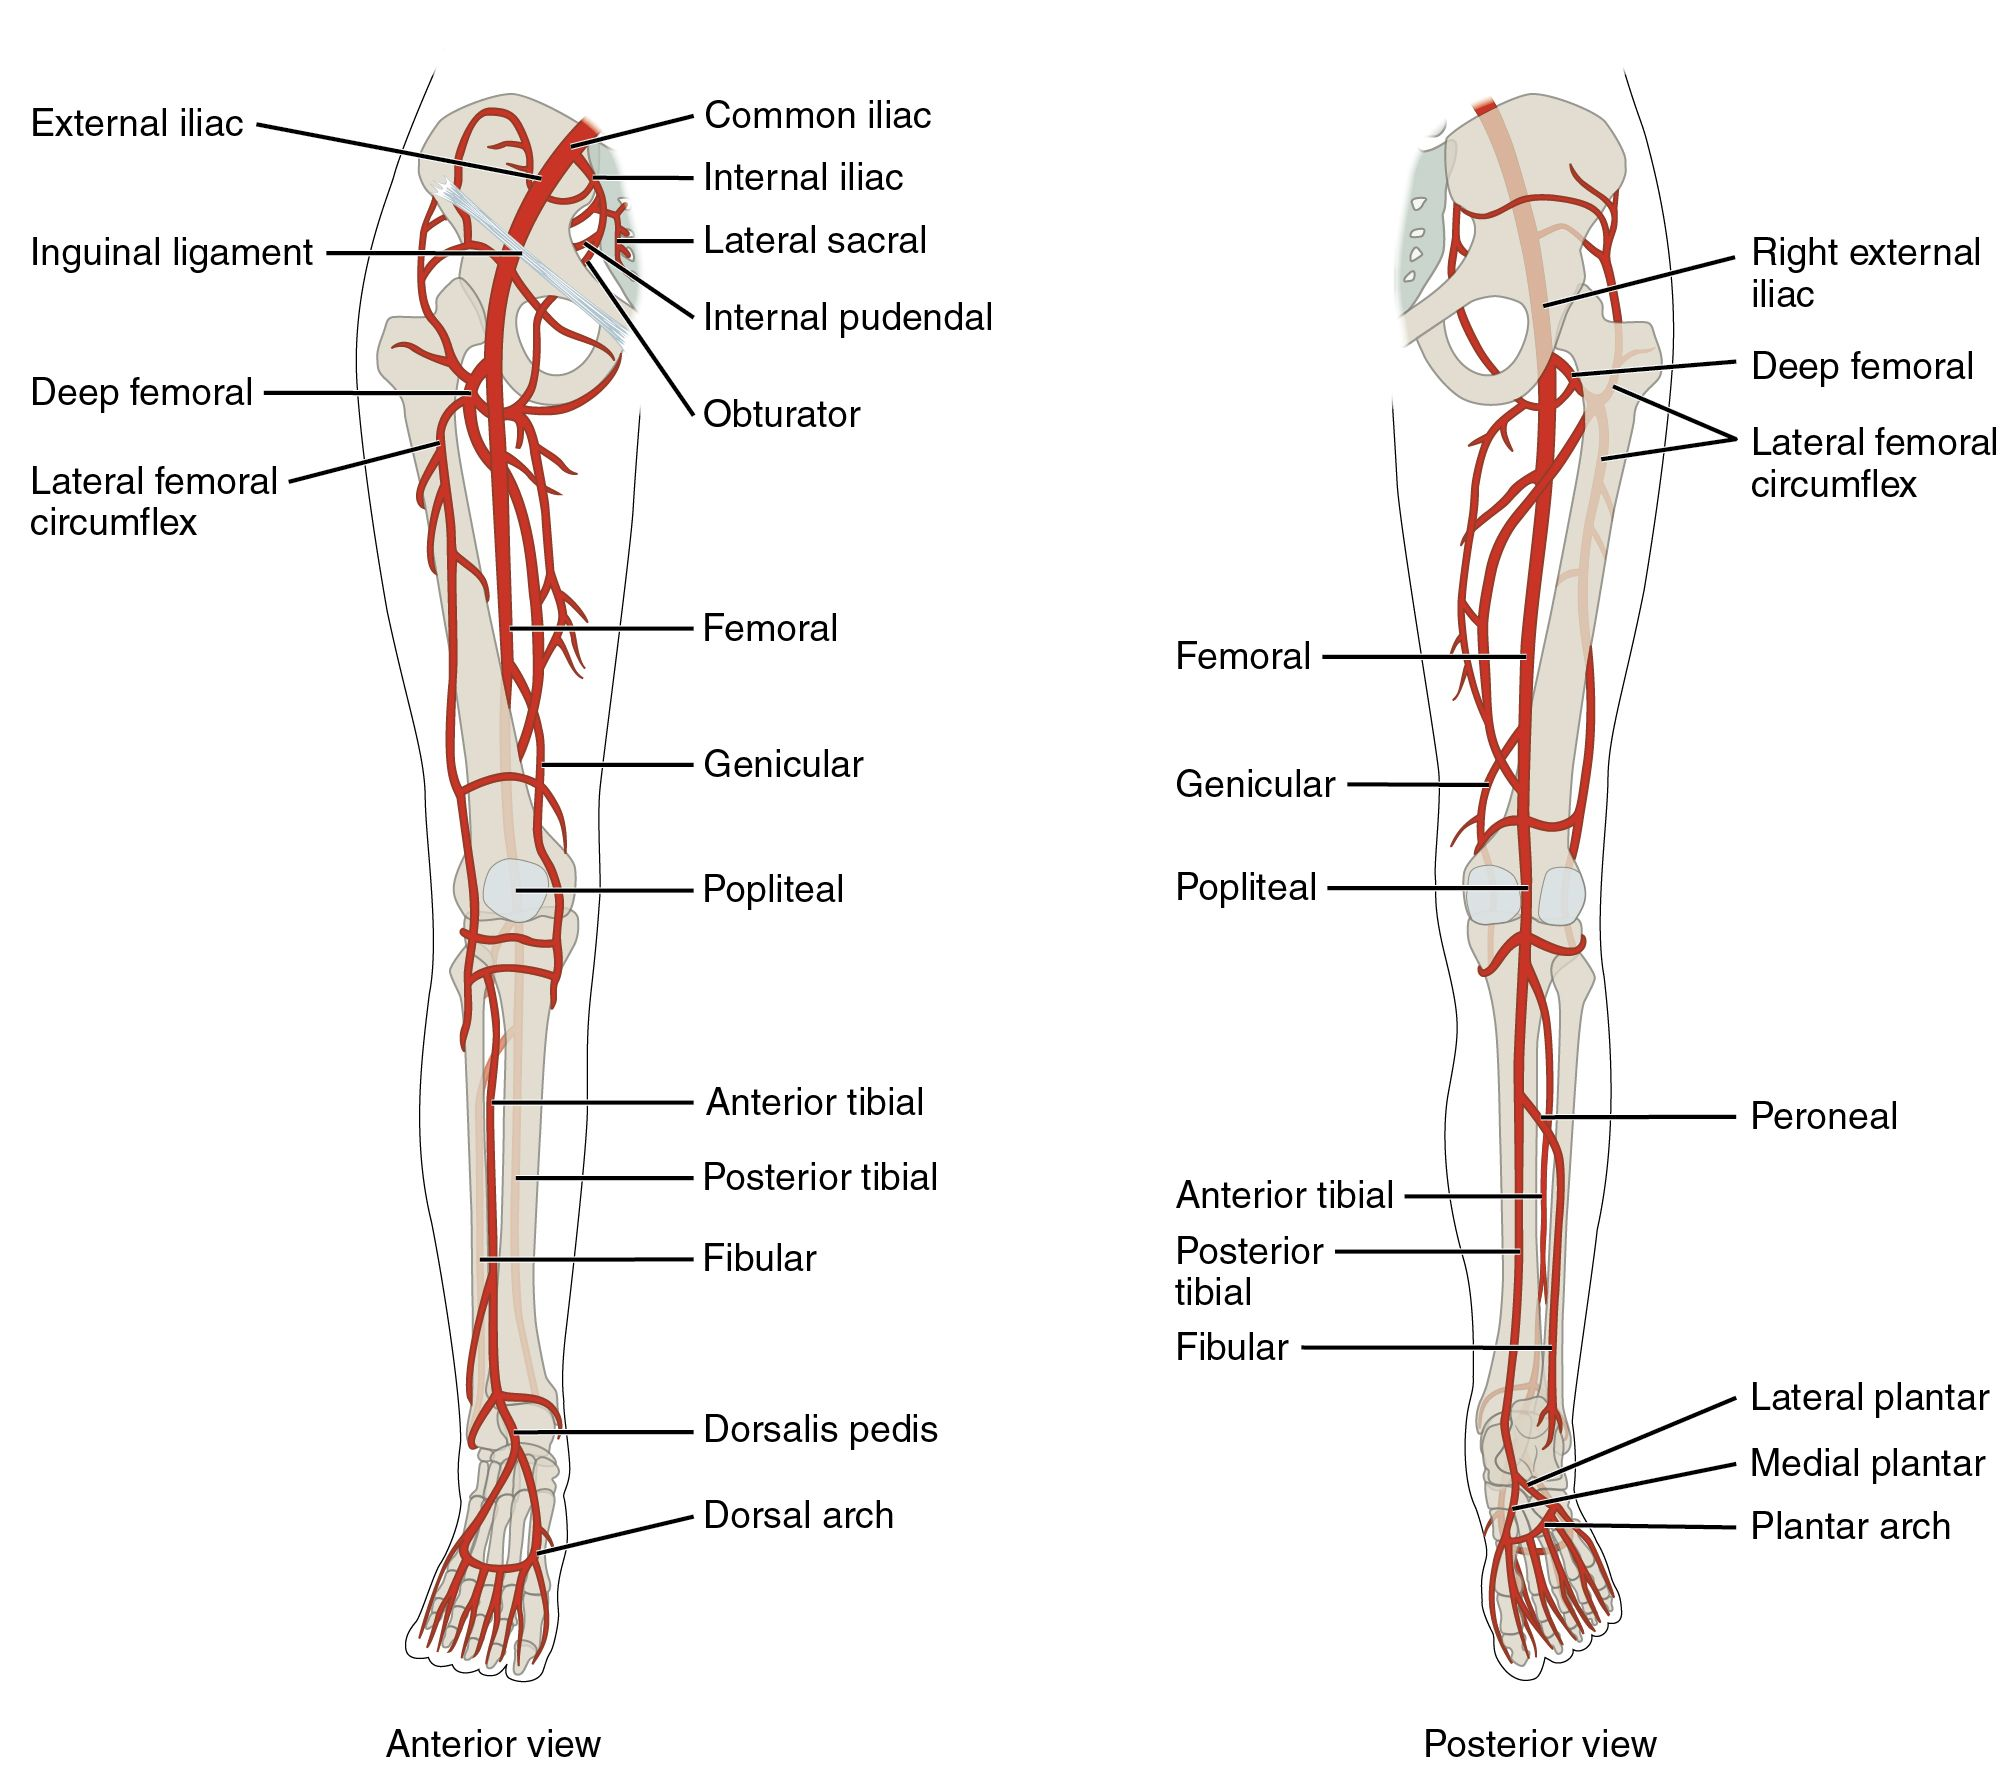 Of Arteries In The Legs And The Right Panel Shows The Posterior View